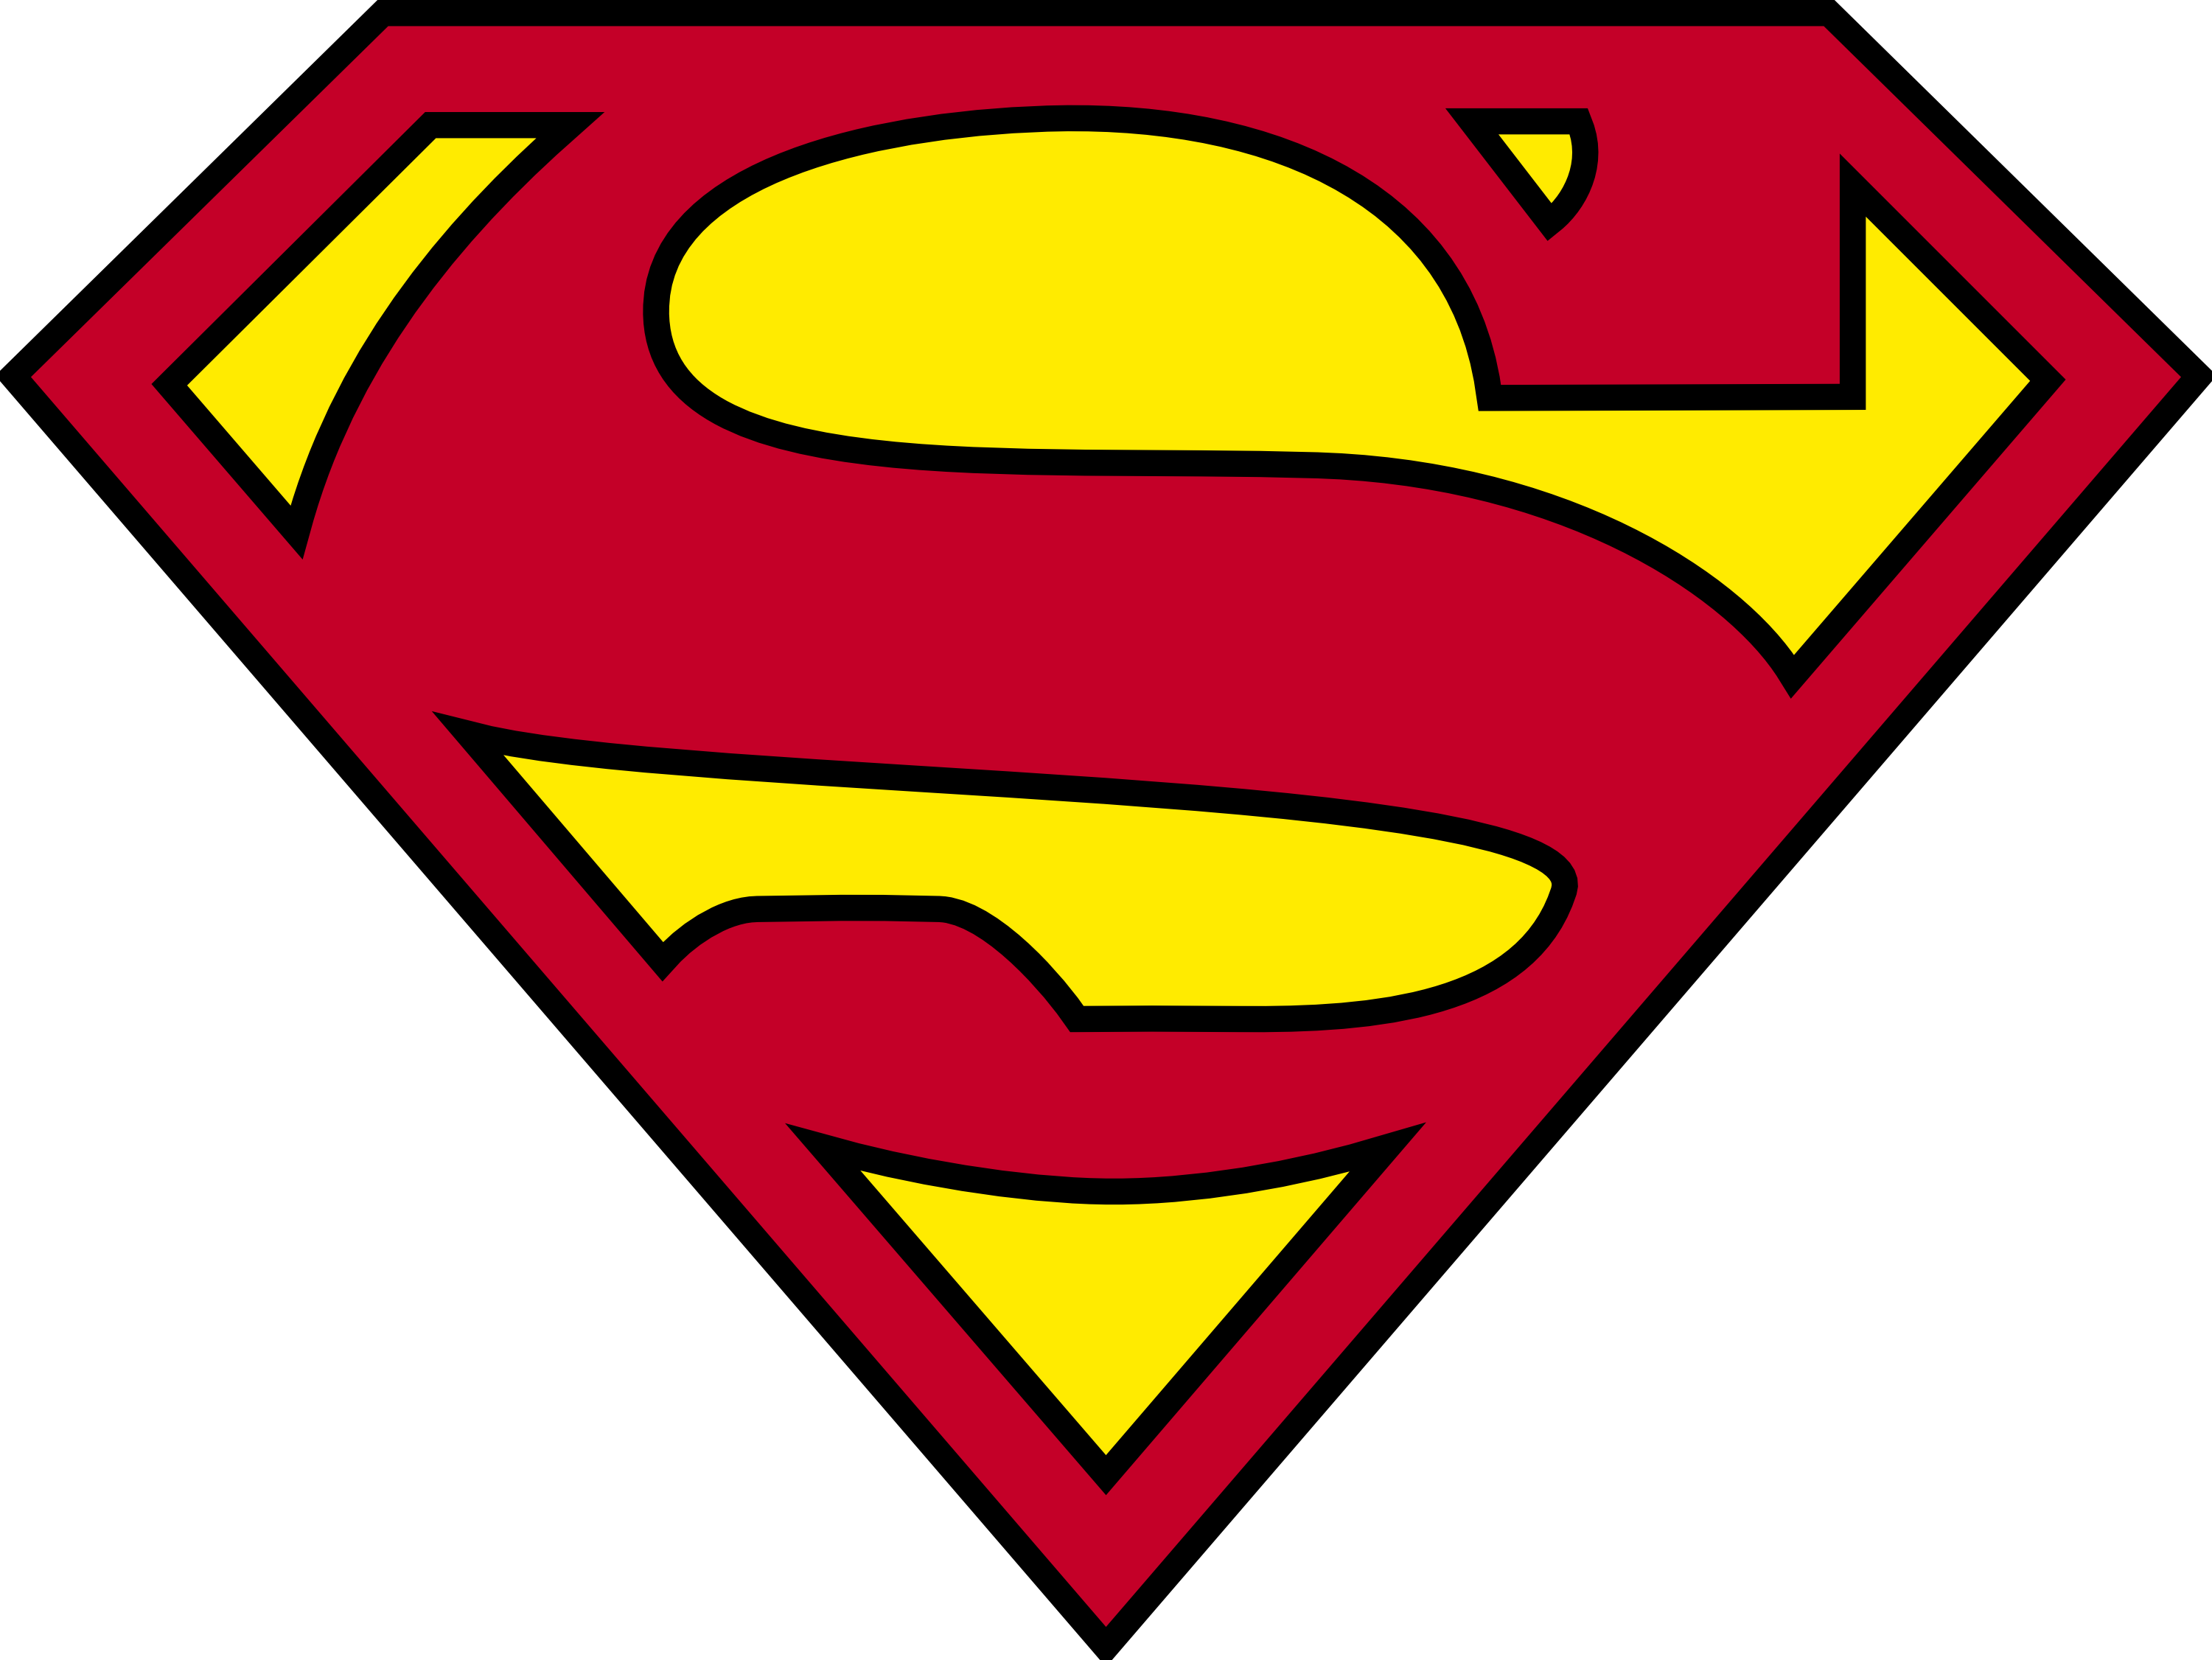 Superhero logos png. Ripped open superman logo